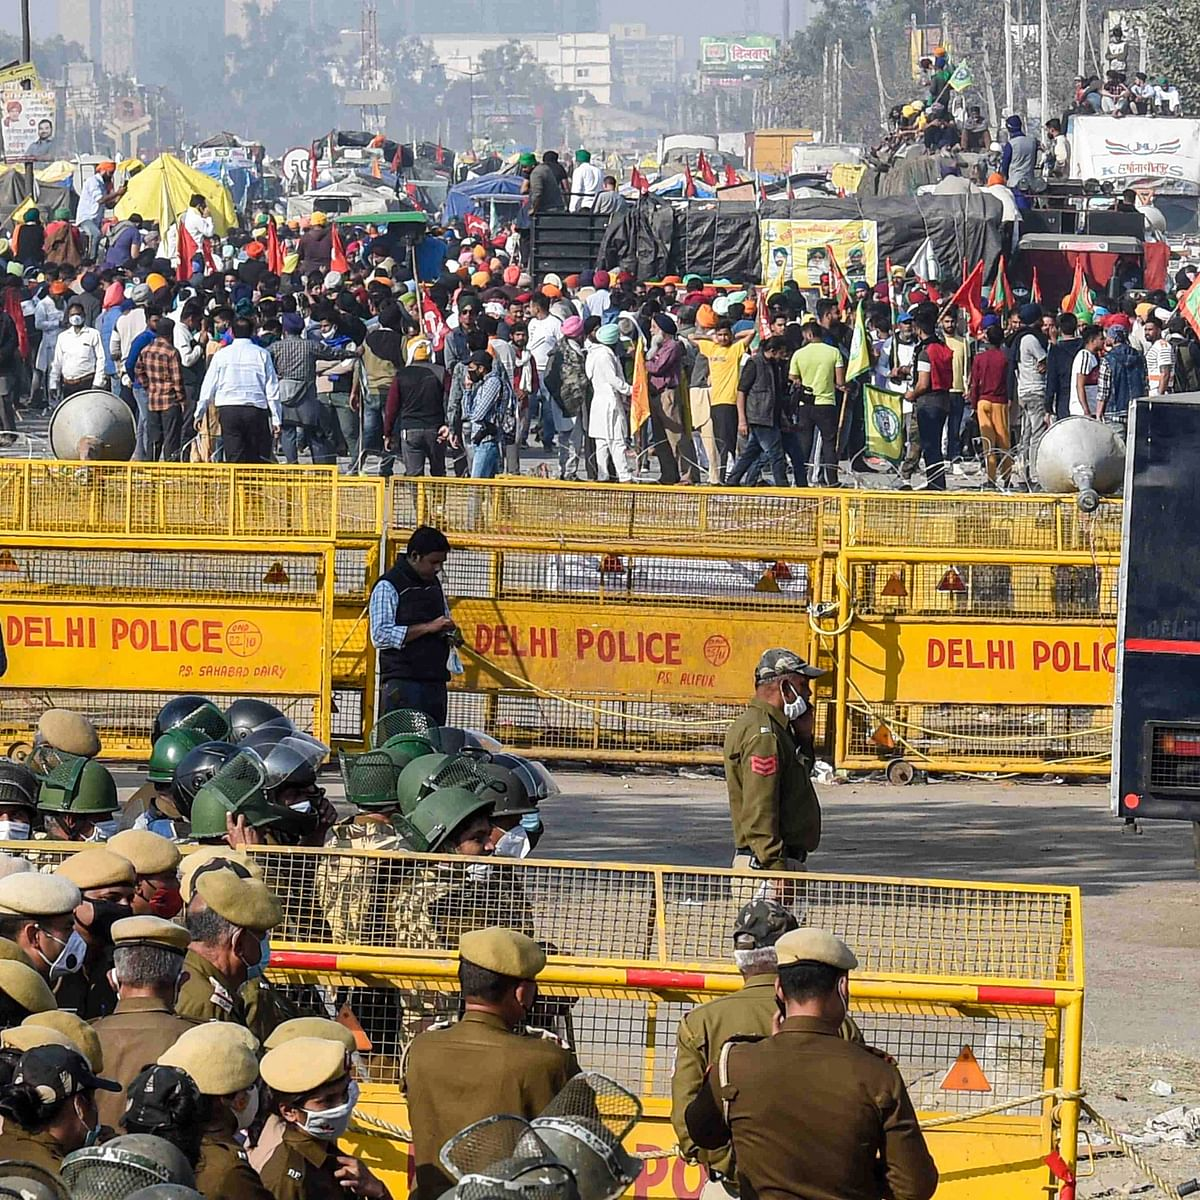 Delhi Police registers FIR over clash between farmers, security forces at Singhu border